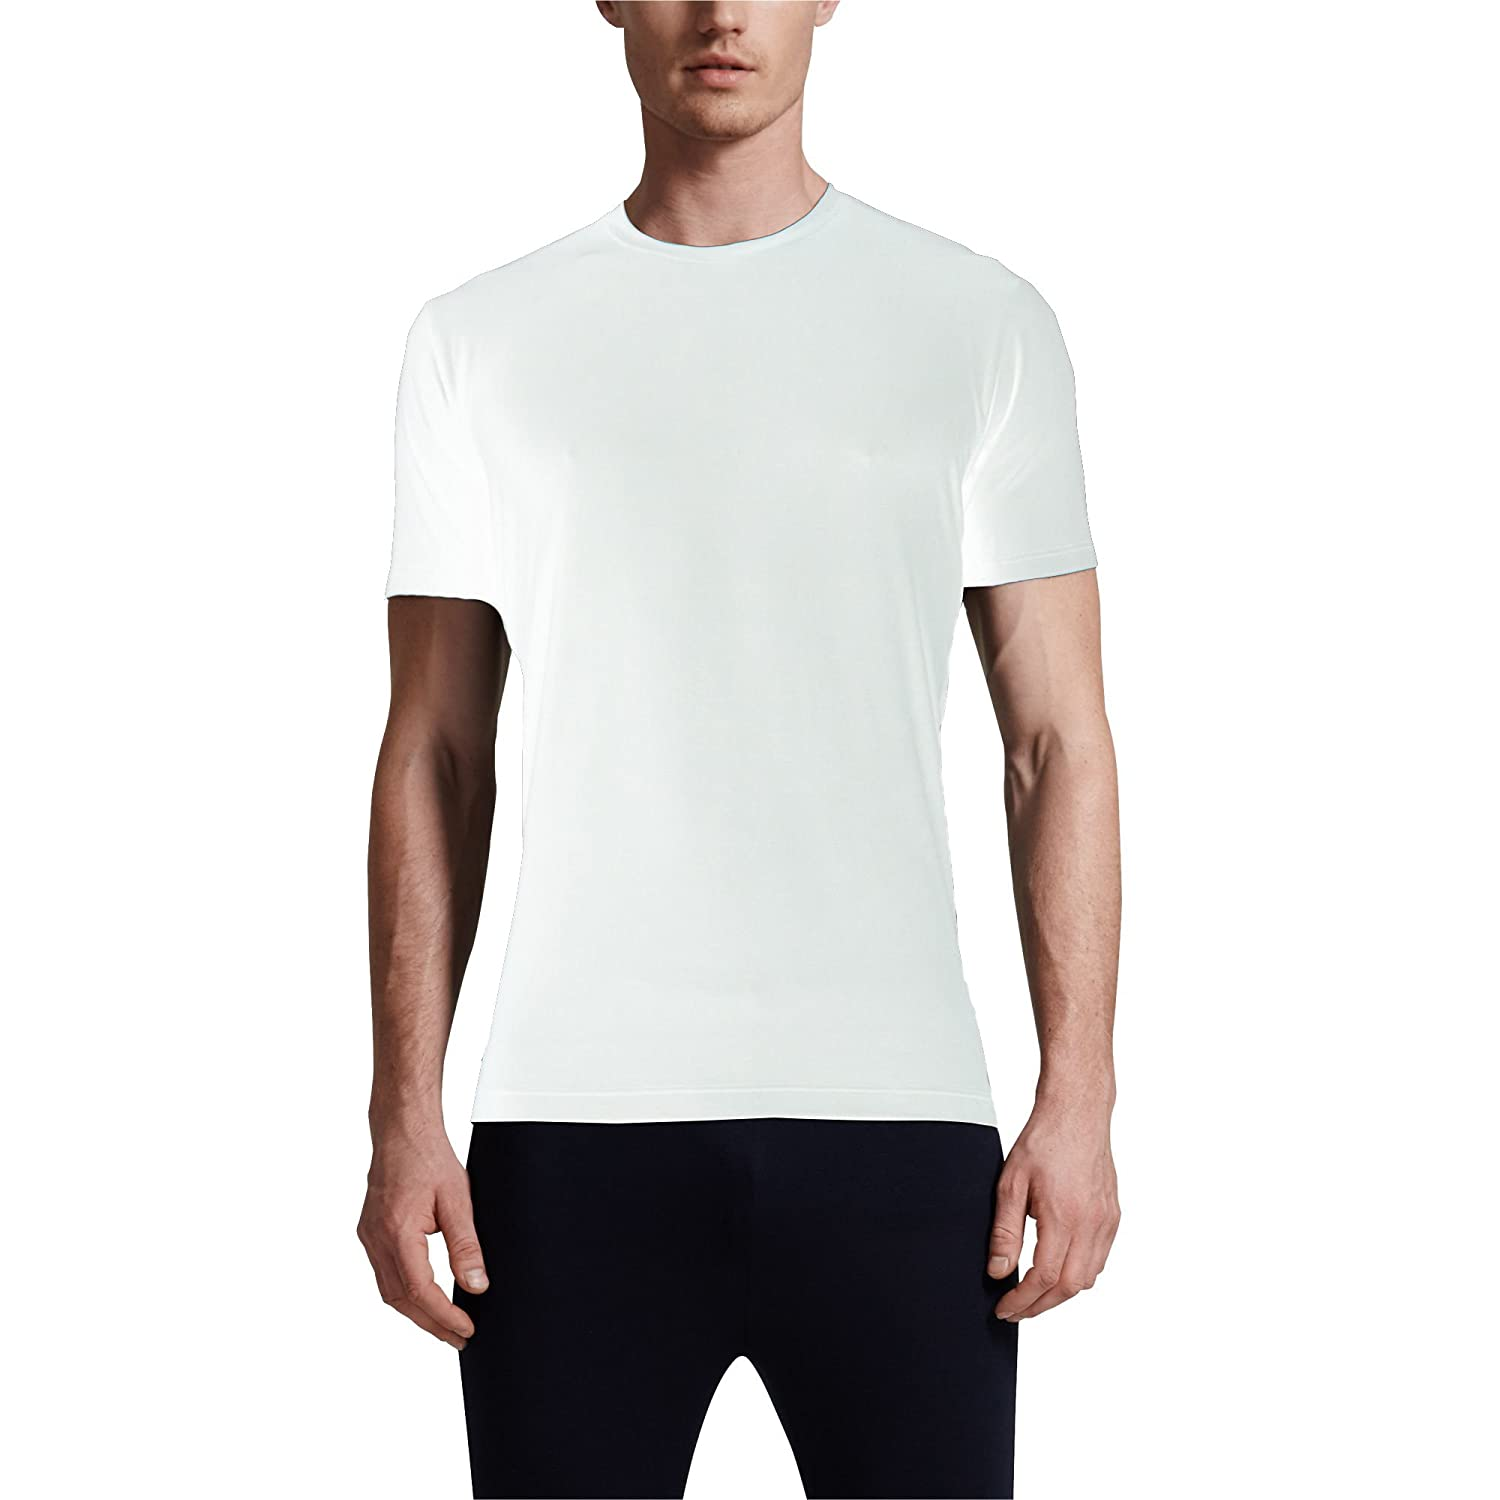 enjoy complimentary shipping various colors perfect quality 32 DEGREES Weatherproof Men's Cool Tee Short Sleeve, Crew Neck, Quick Dry,  Anti-Odor